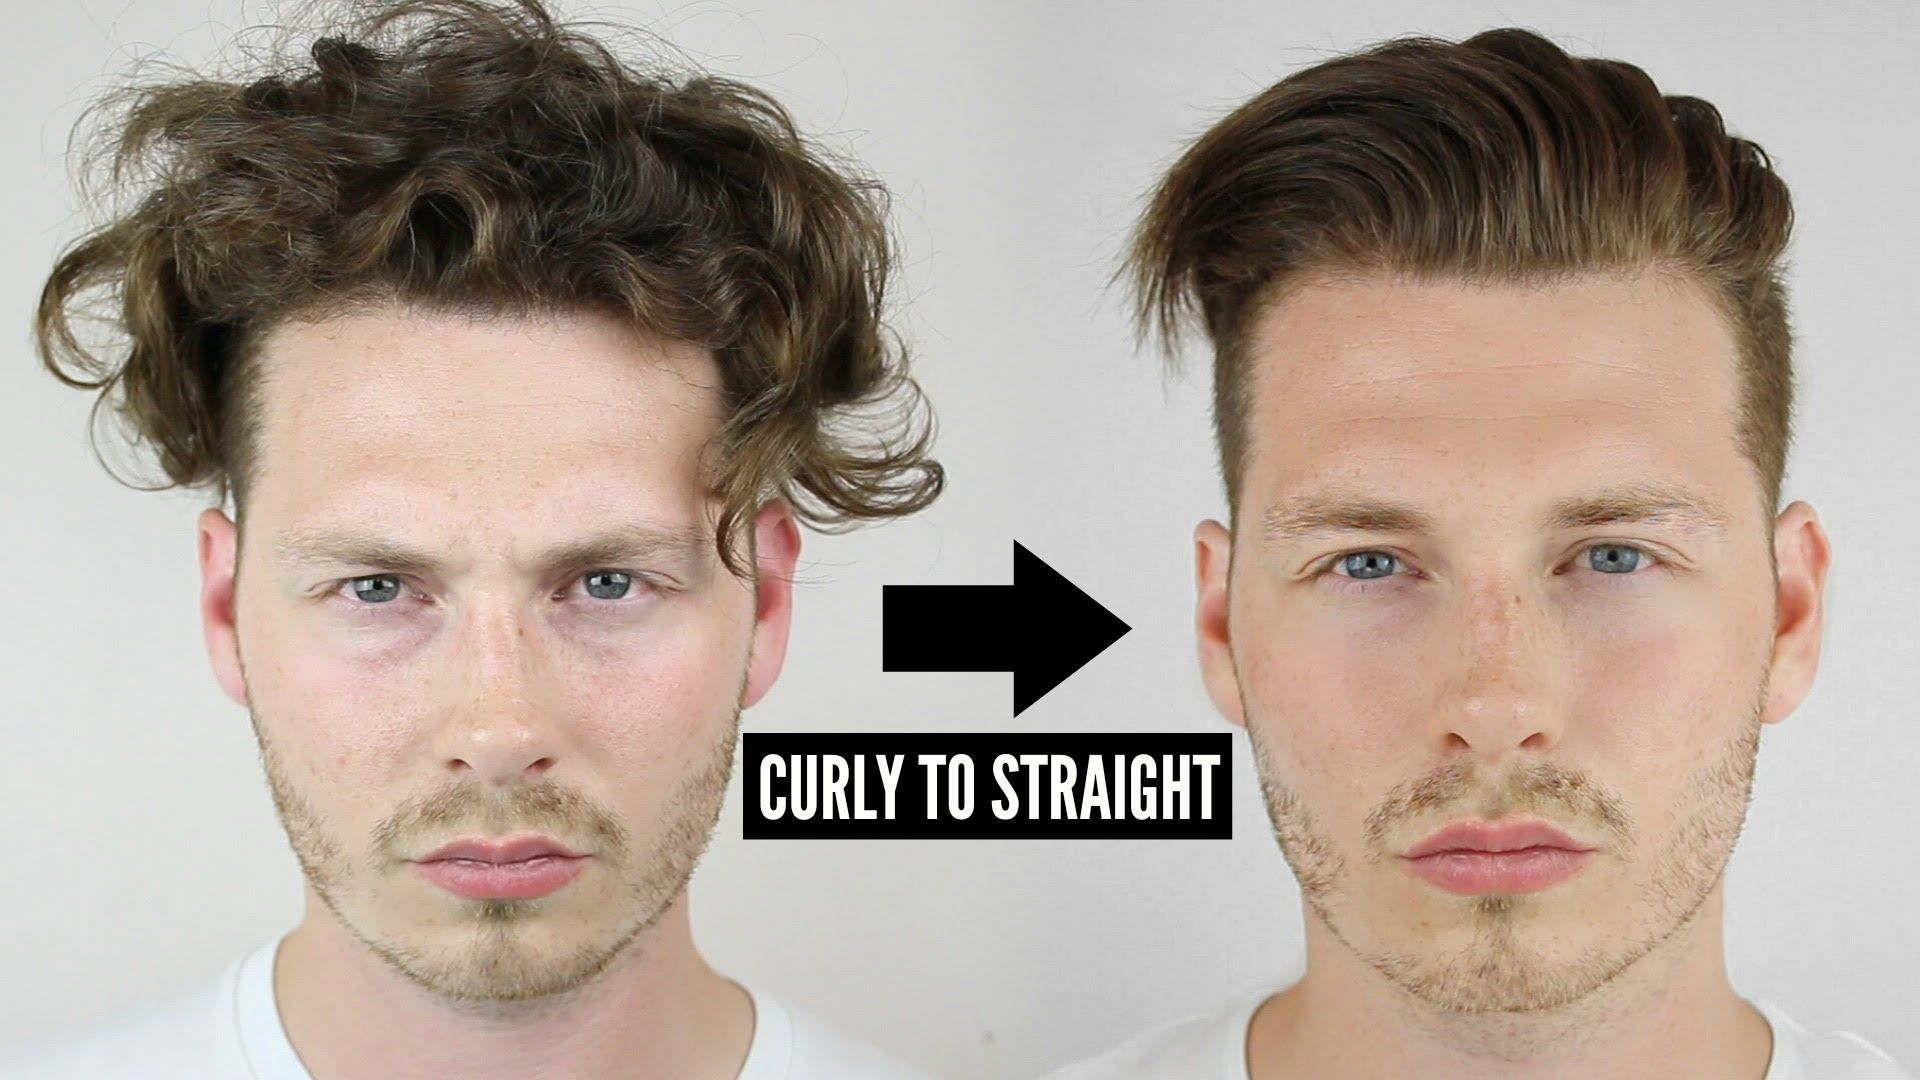 Mens Curly To Straight Hair Tutorial How To Style Curly Hair 2016 Curly Hair Styles Straight Hairstyles Hair Straightner